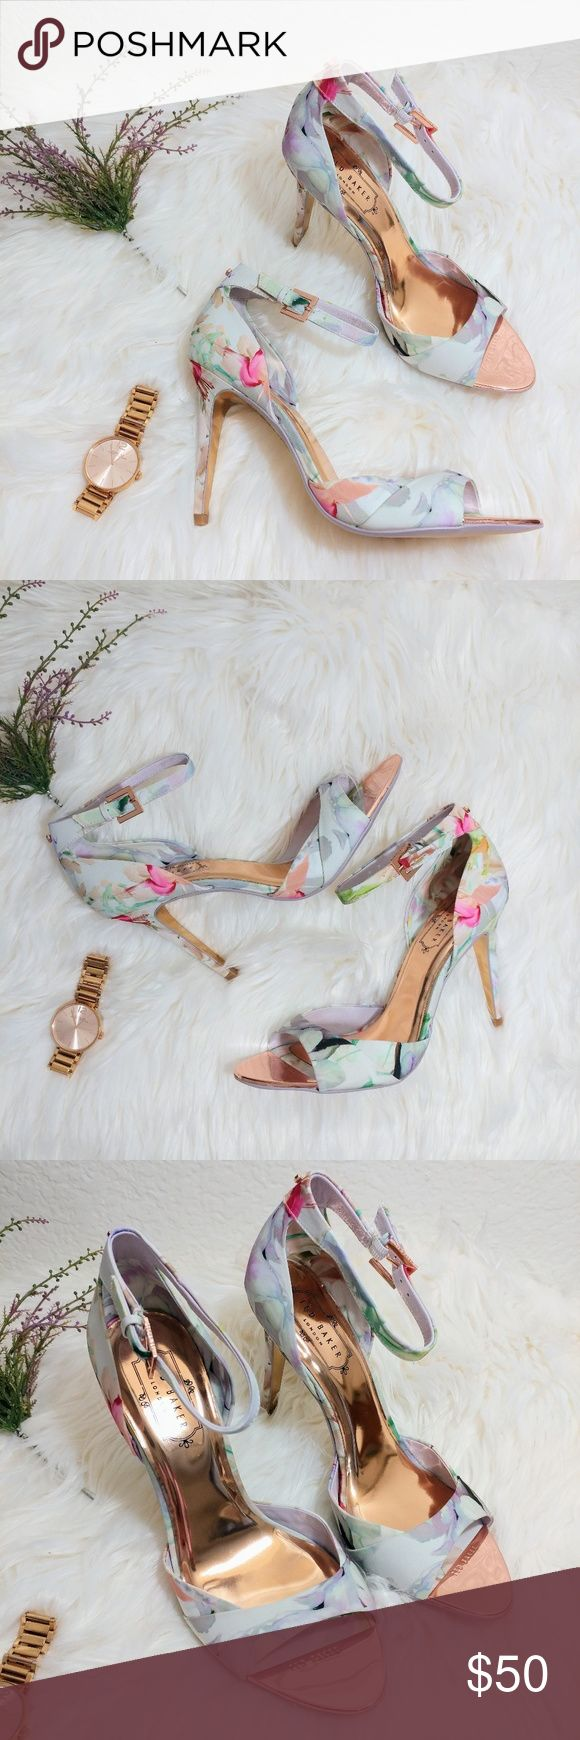 """Ted Baker Ankle Strap Caleno Hanging Gardens Heels Brand: Ted Baker Size: Women 8  These heels are adorned in a dreamy whirl of pastel floral prints and metallic rose gold insole. Trendy ankle strap with a small 3D bow in the back.   Brand new without Box. 4"""" Heel  Let me know if you have any questions about these adorable heels! Price is firm. Ted Baker Shoes Sandals"""